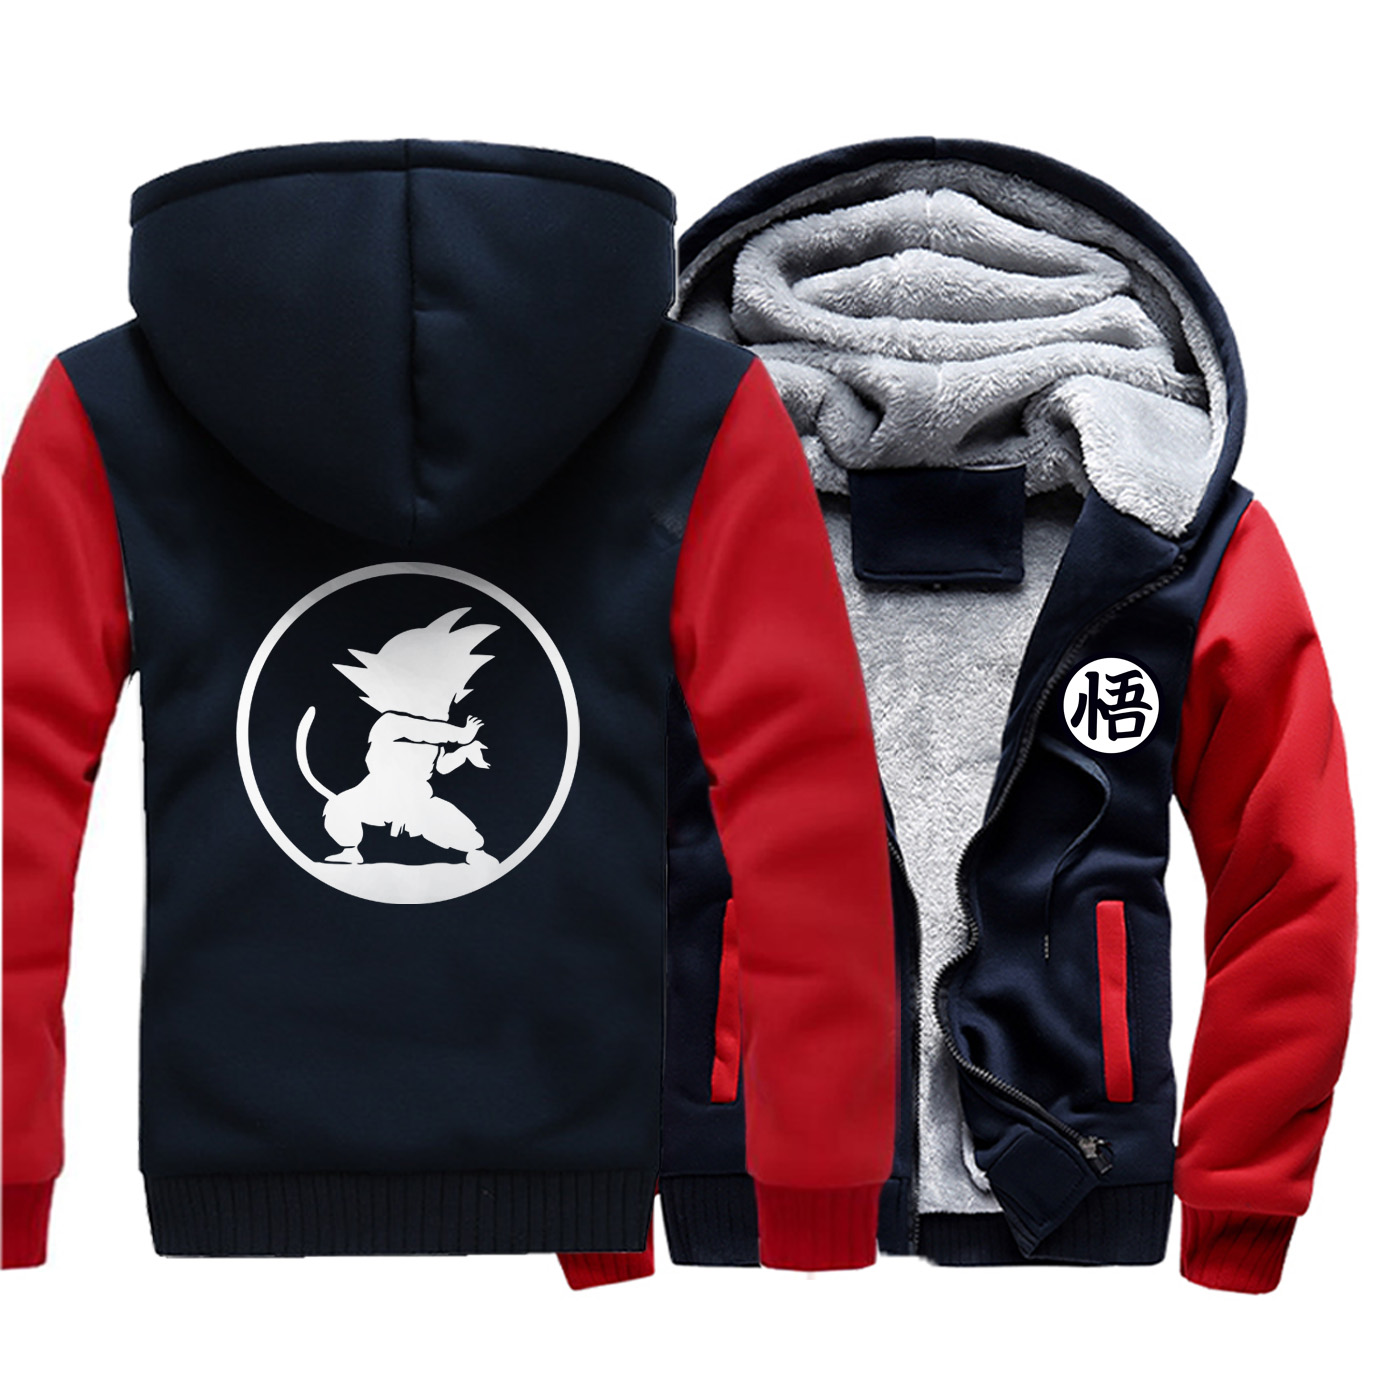 Cartoon Cute Saiyan Anime Japan Dragon Ball 2019 New Hoody Sweatshirt Fahison Sportswear Funny Streetwear Winter Clothing Hooded